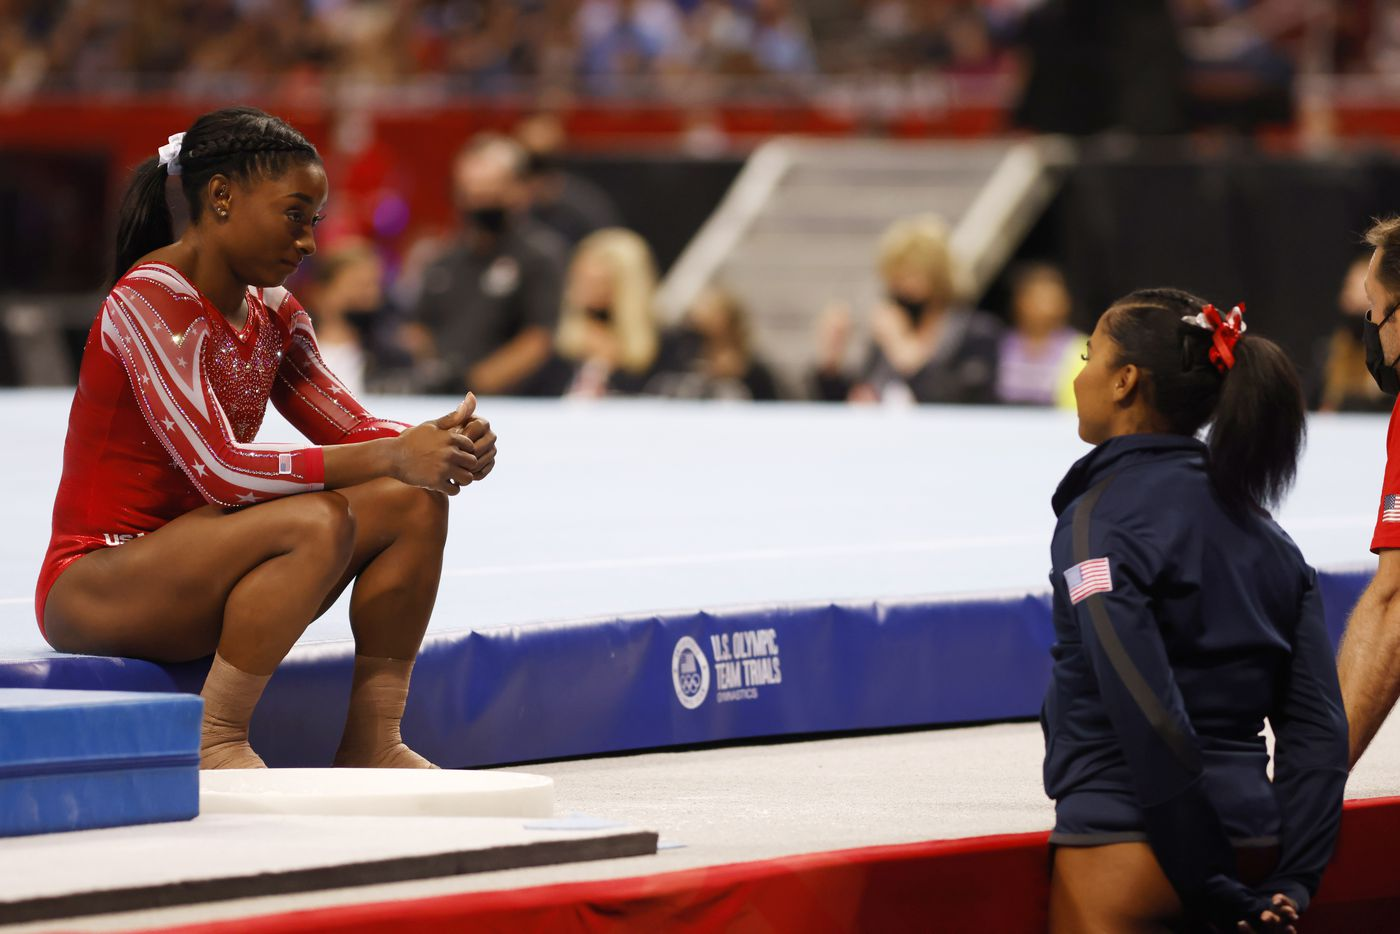 Simone Biles talks with Jordan Chiles before competing on the floor during day 2 of the women's 2021 U.S. Olympic Trials at The Dome at America's Center on Saturday, June 27, 2021 in St Louis, Missouri.(Vernon Bryant/The Dallas Morning News)